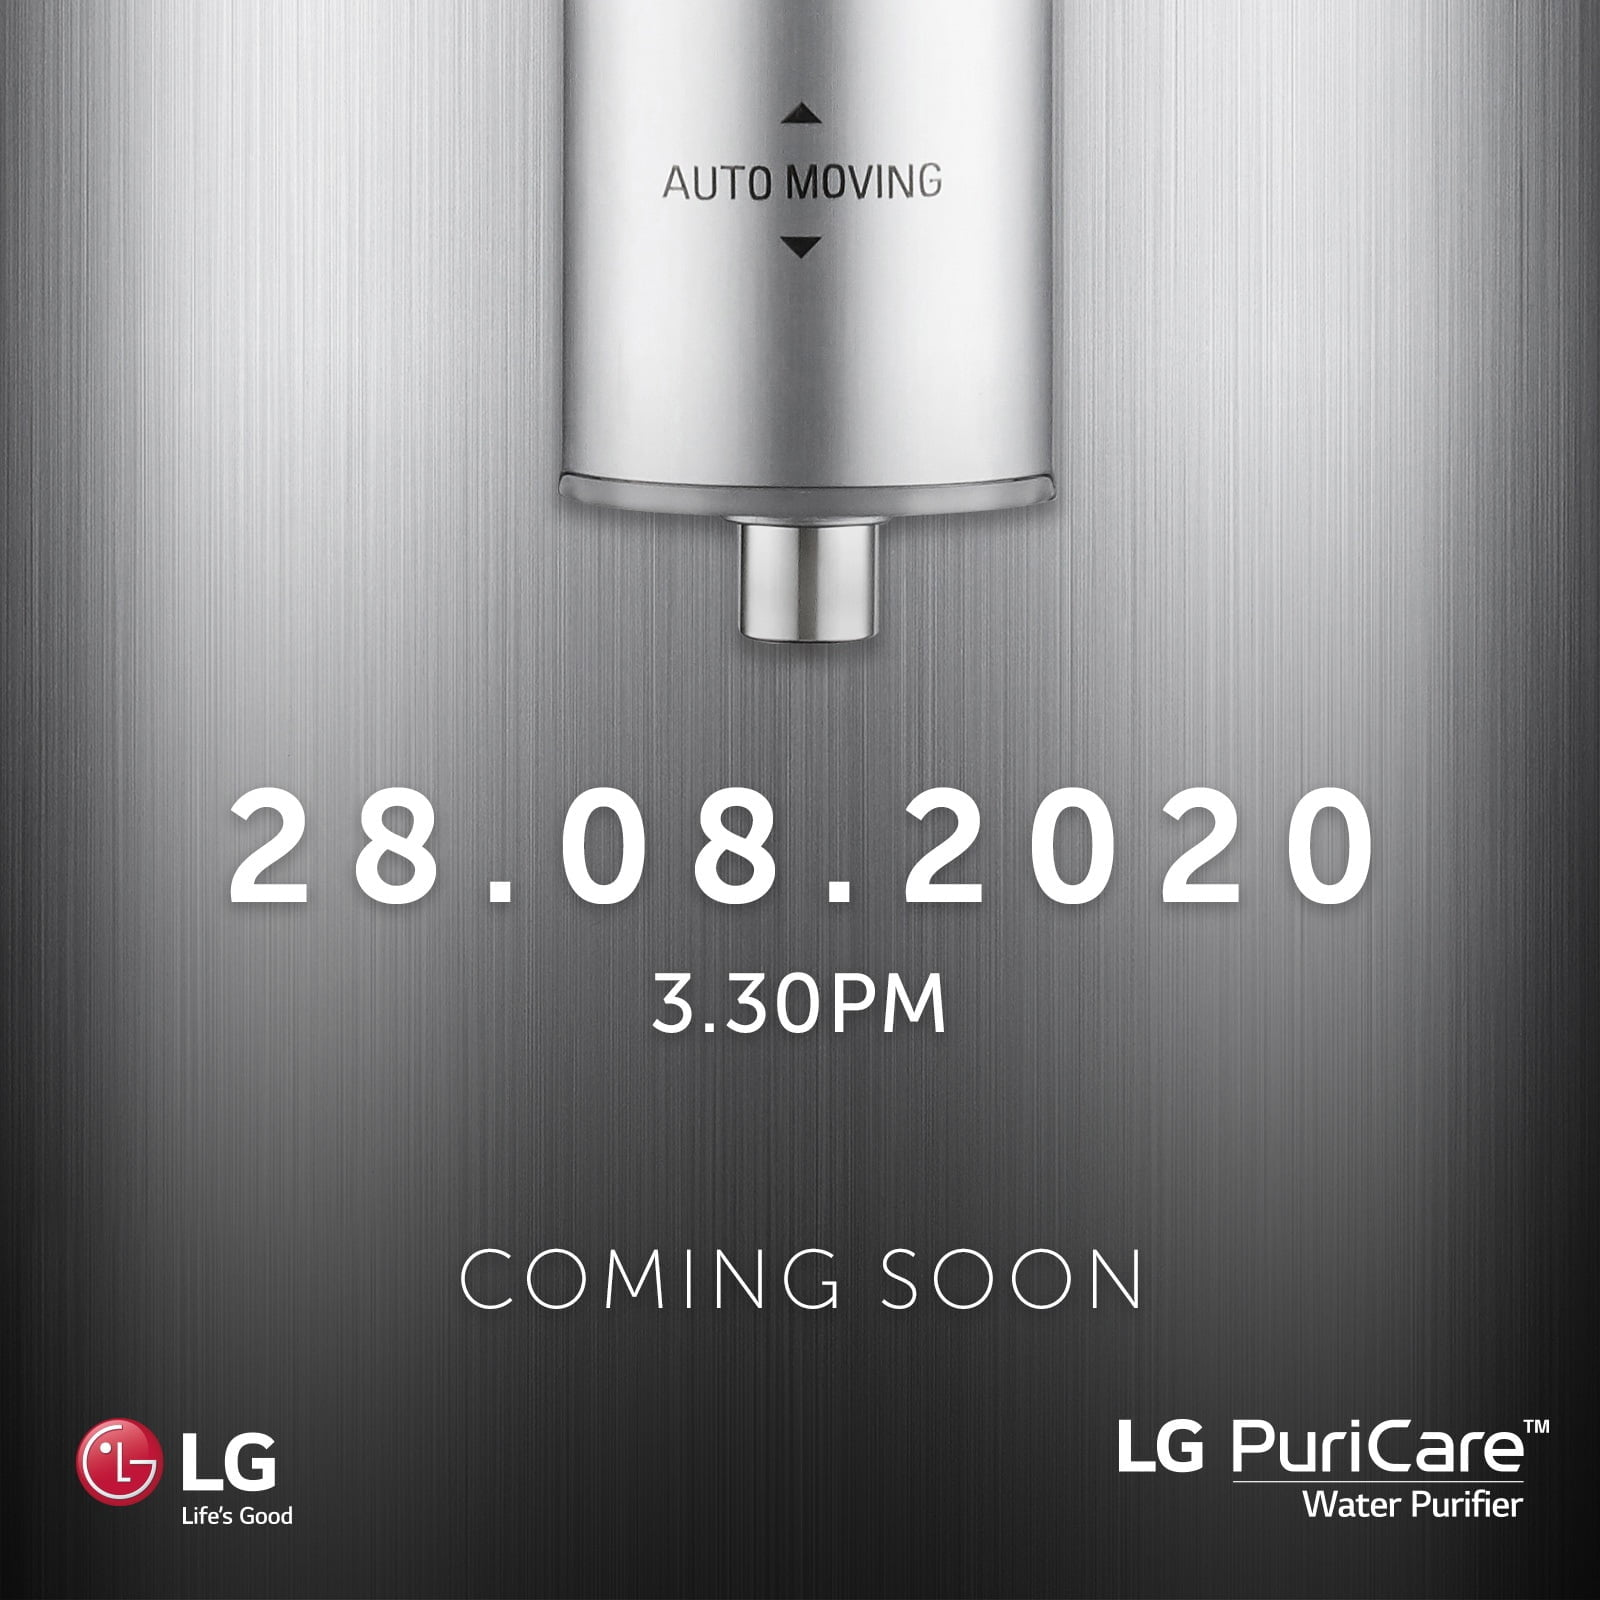 Moving 4-WARD With LG PuriCare™